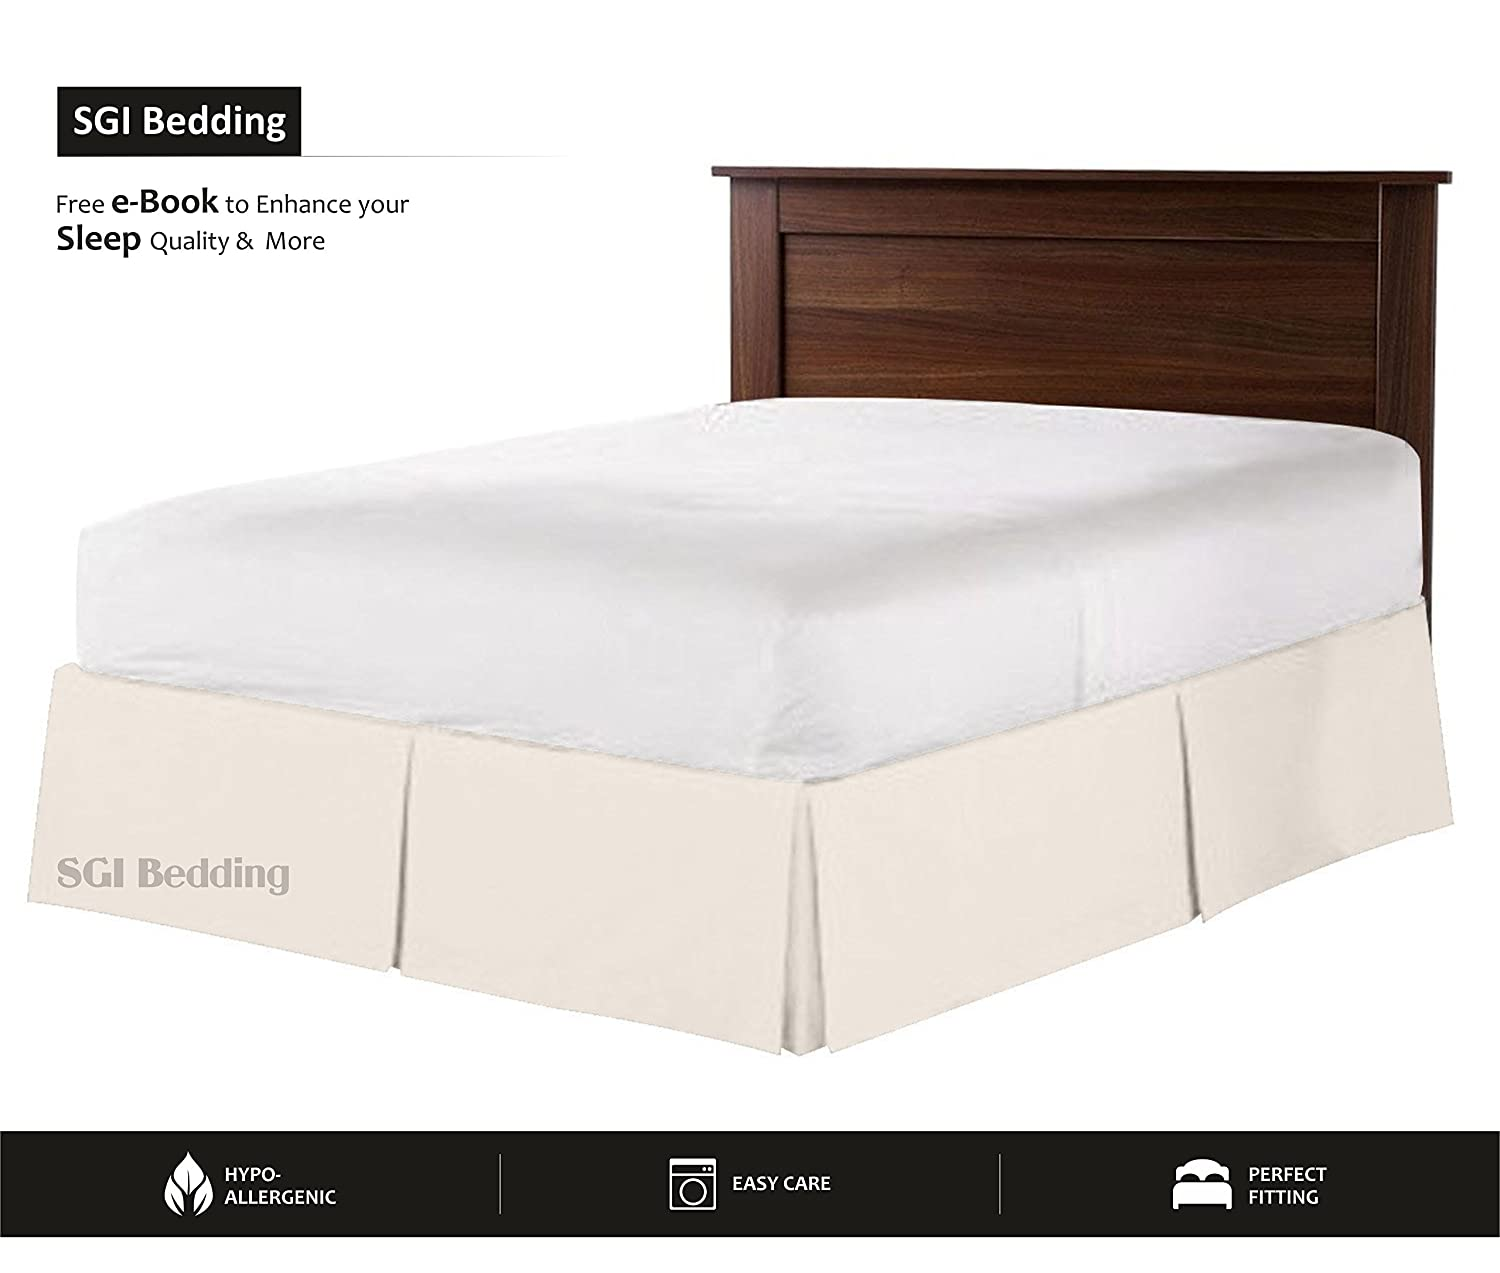 550 TC Egyptian Cotton Bedding 1X Bed Skirt 12 Inch Drop King (78X80) Ivory Solid SGI bedding